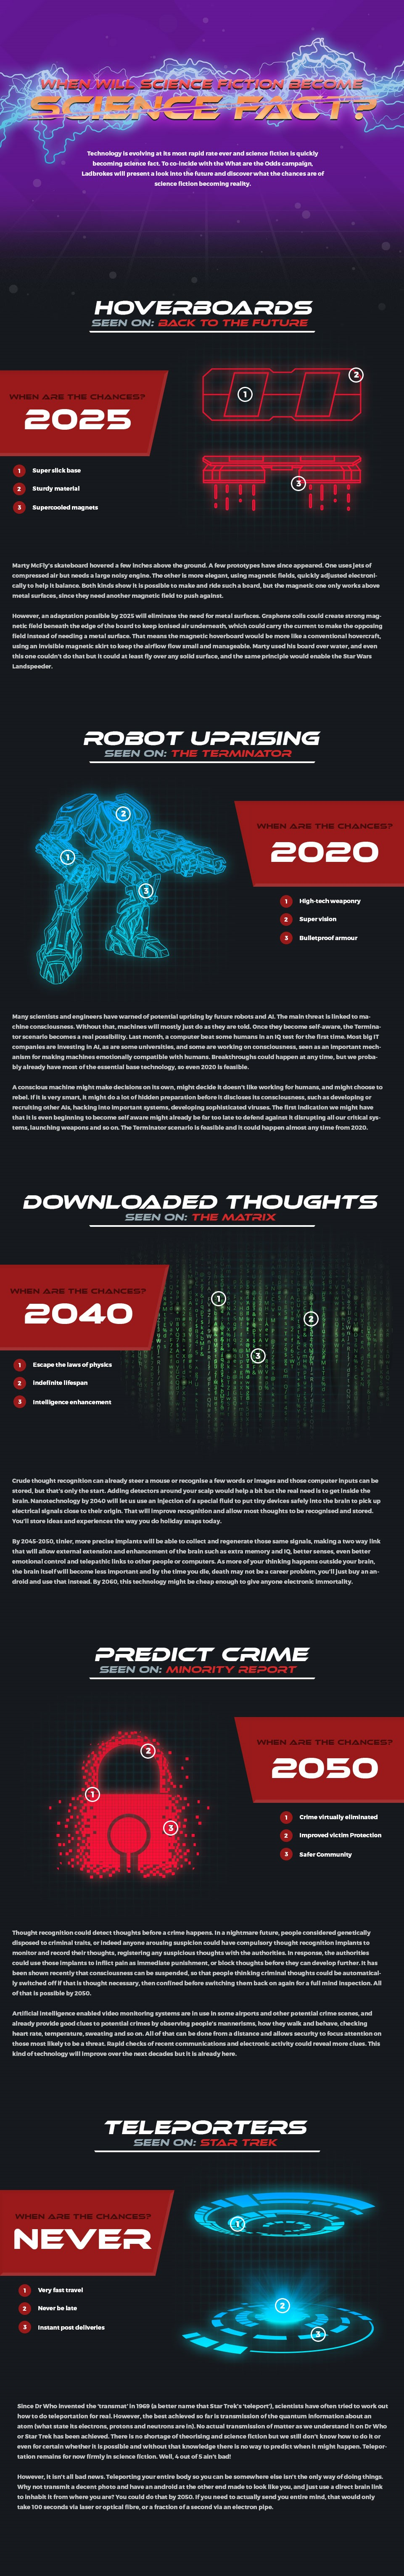 science-fiction-infographic